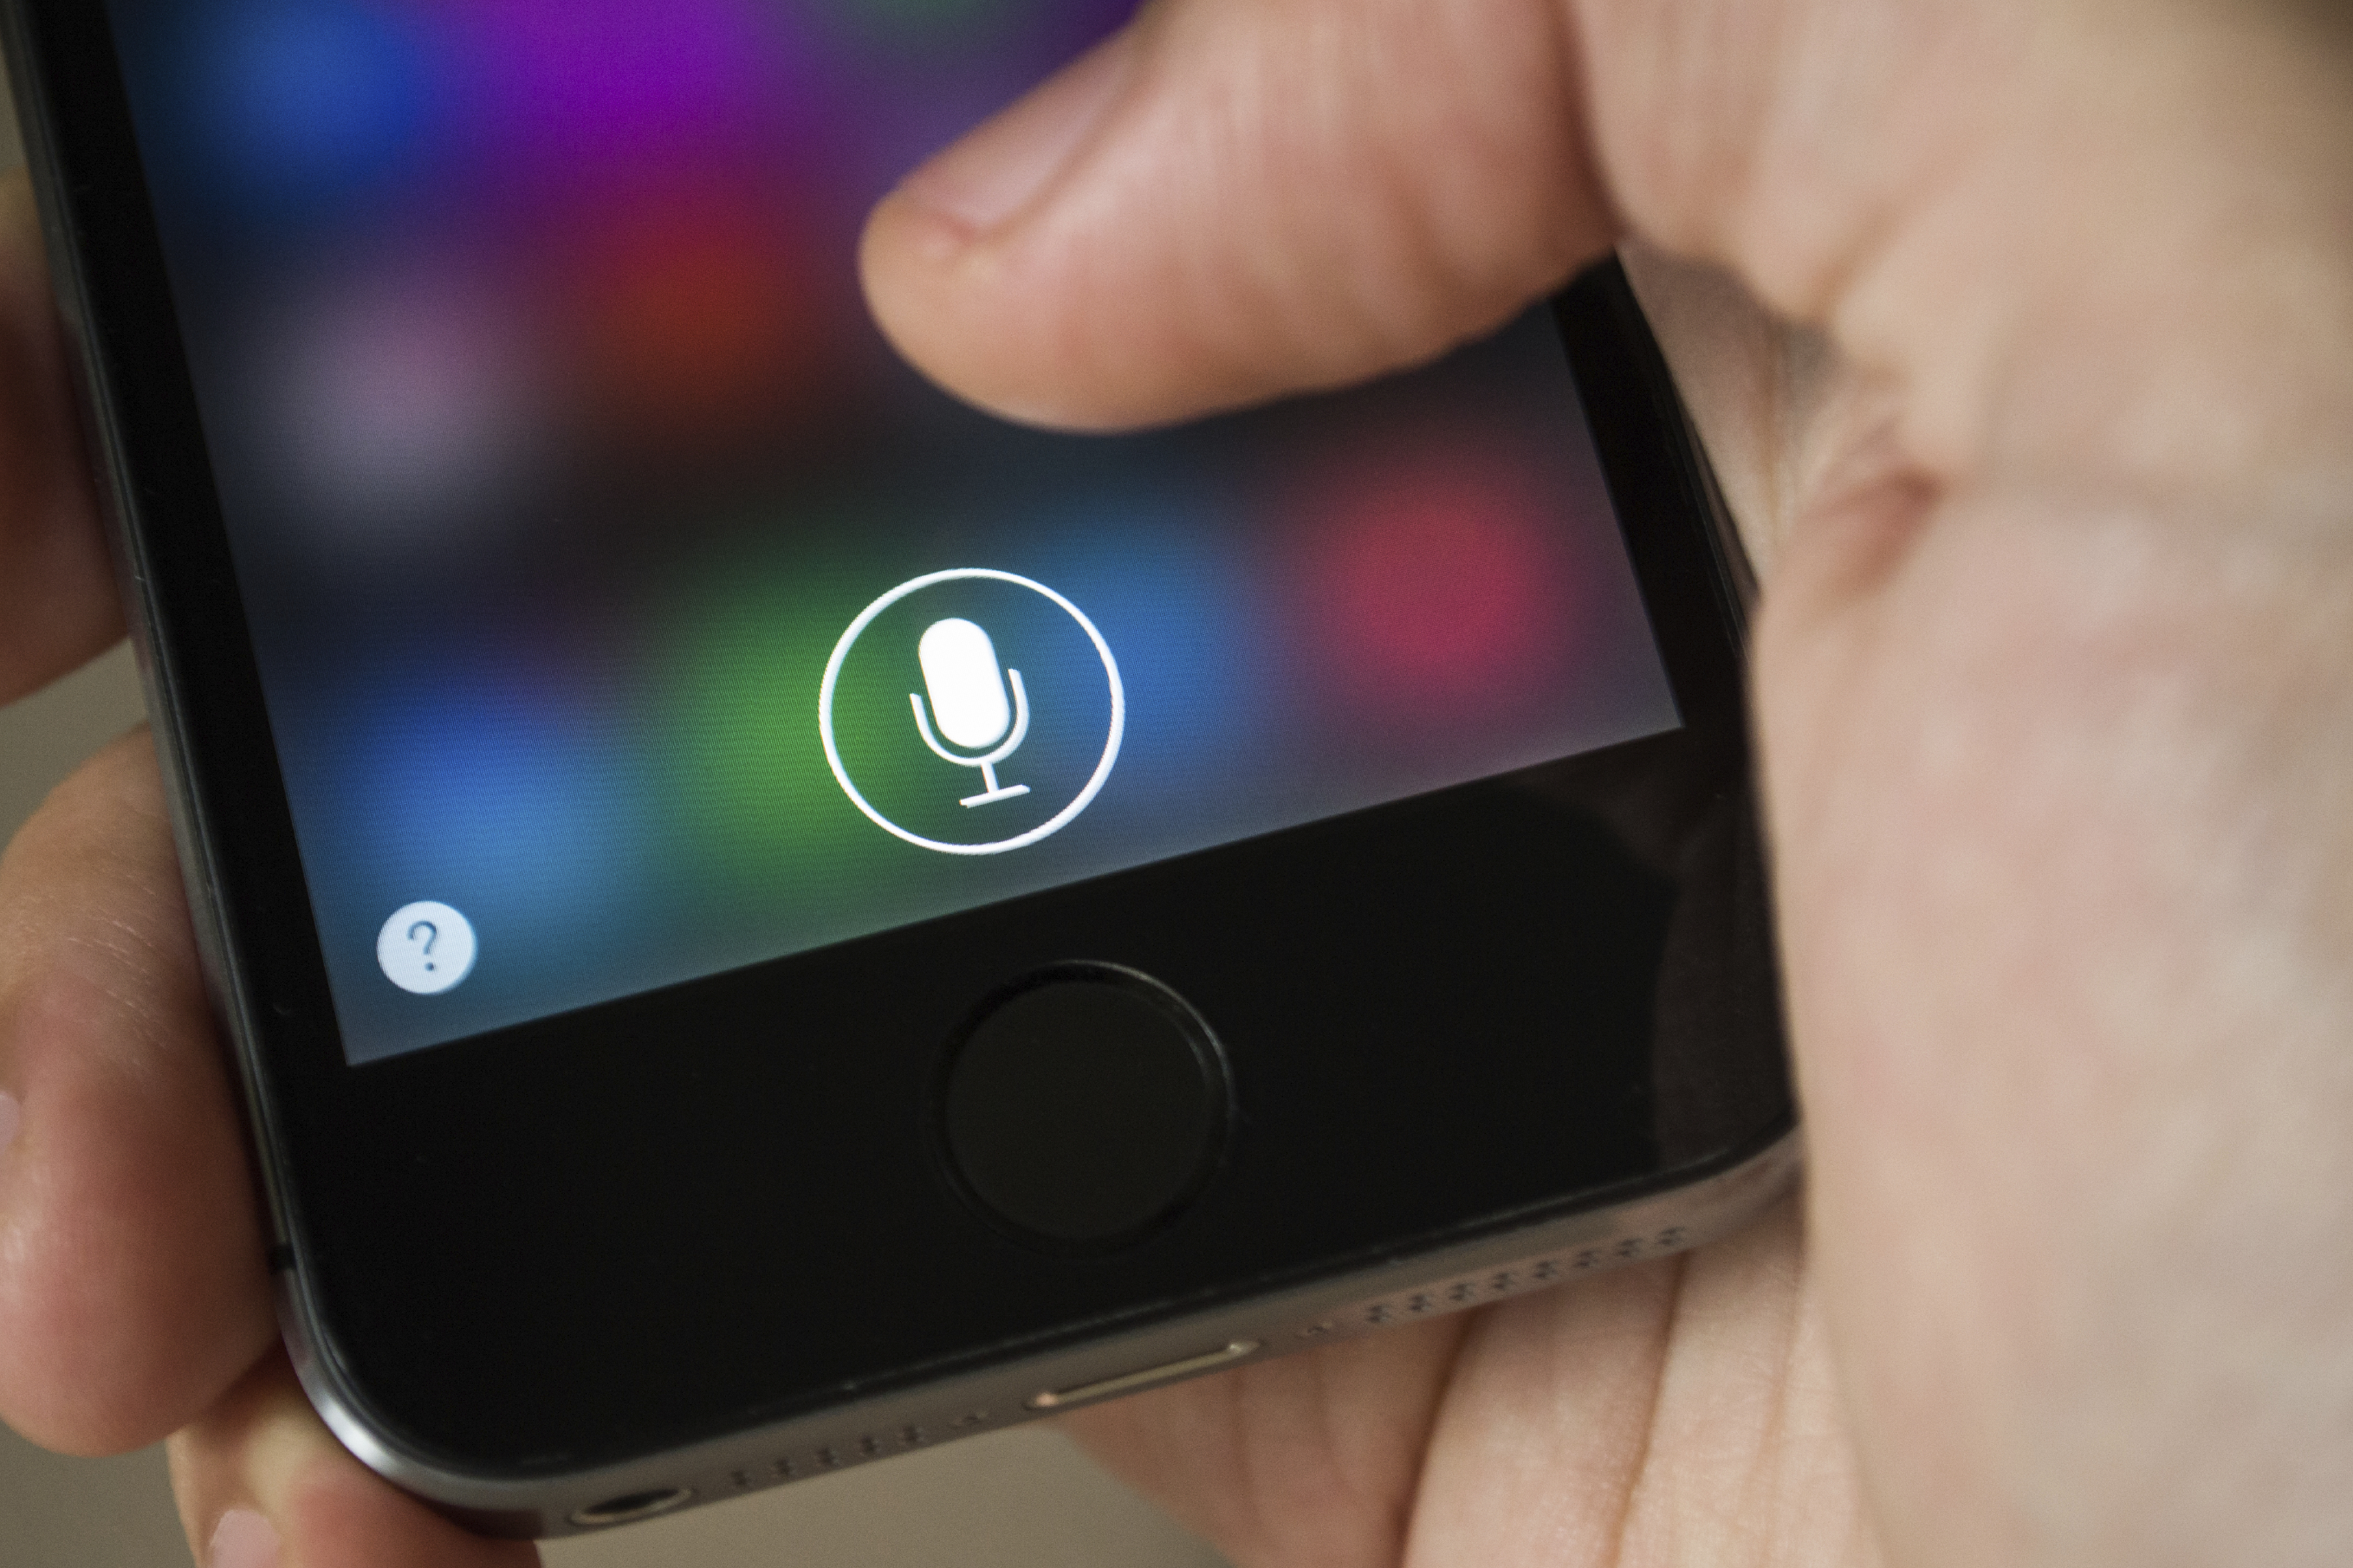 Apple Makes Siri More Competent With Latest iOS Update - IPG